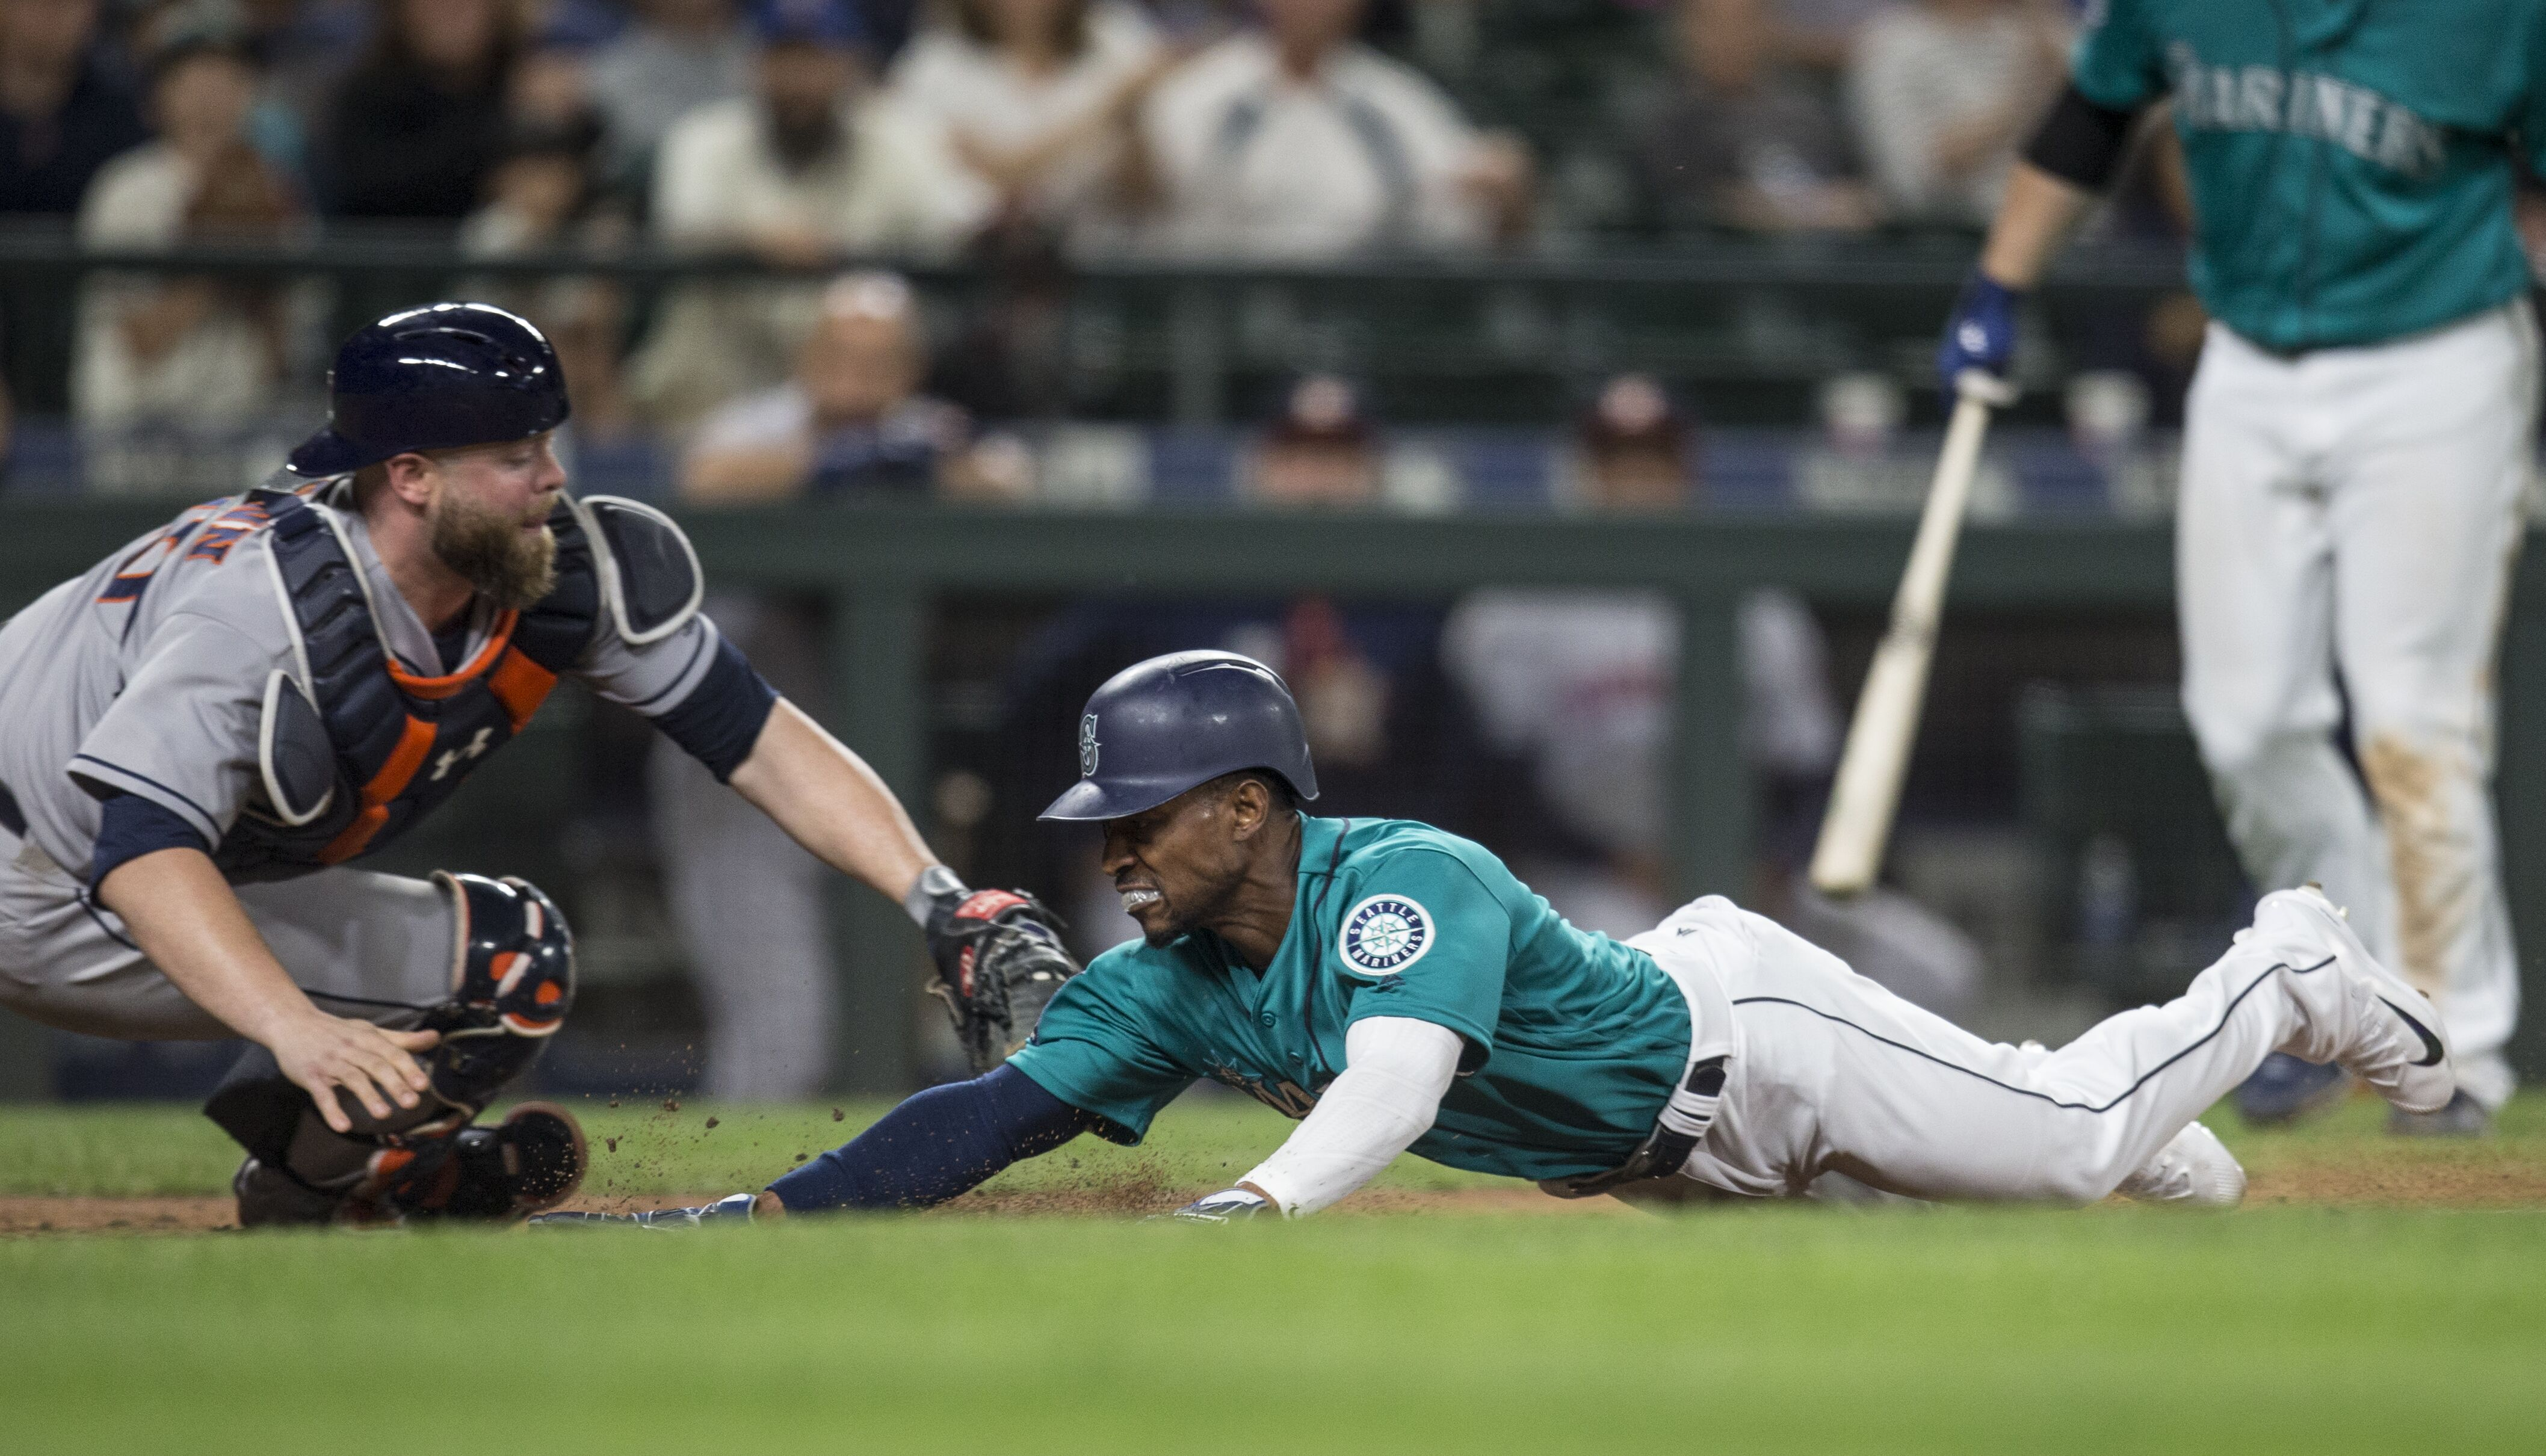 800239292-houston-astros-v-seattle-mariners.jpg